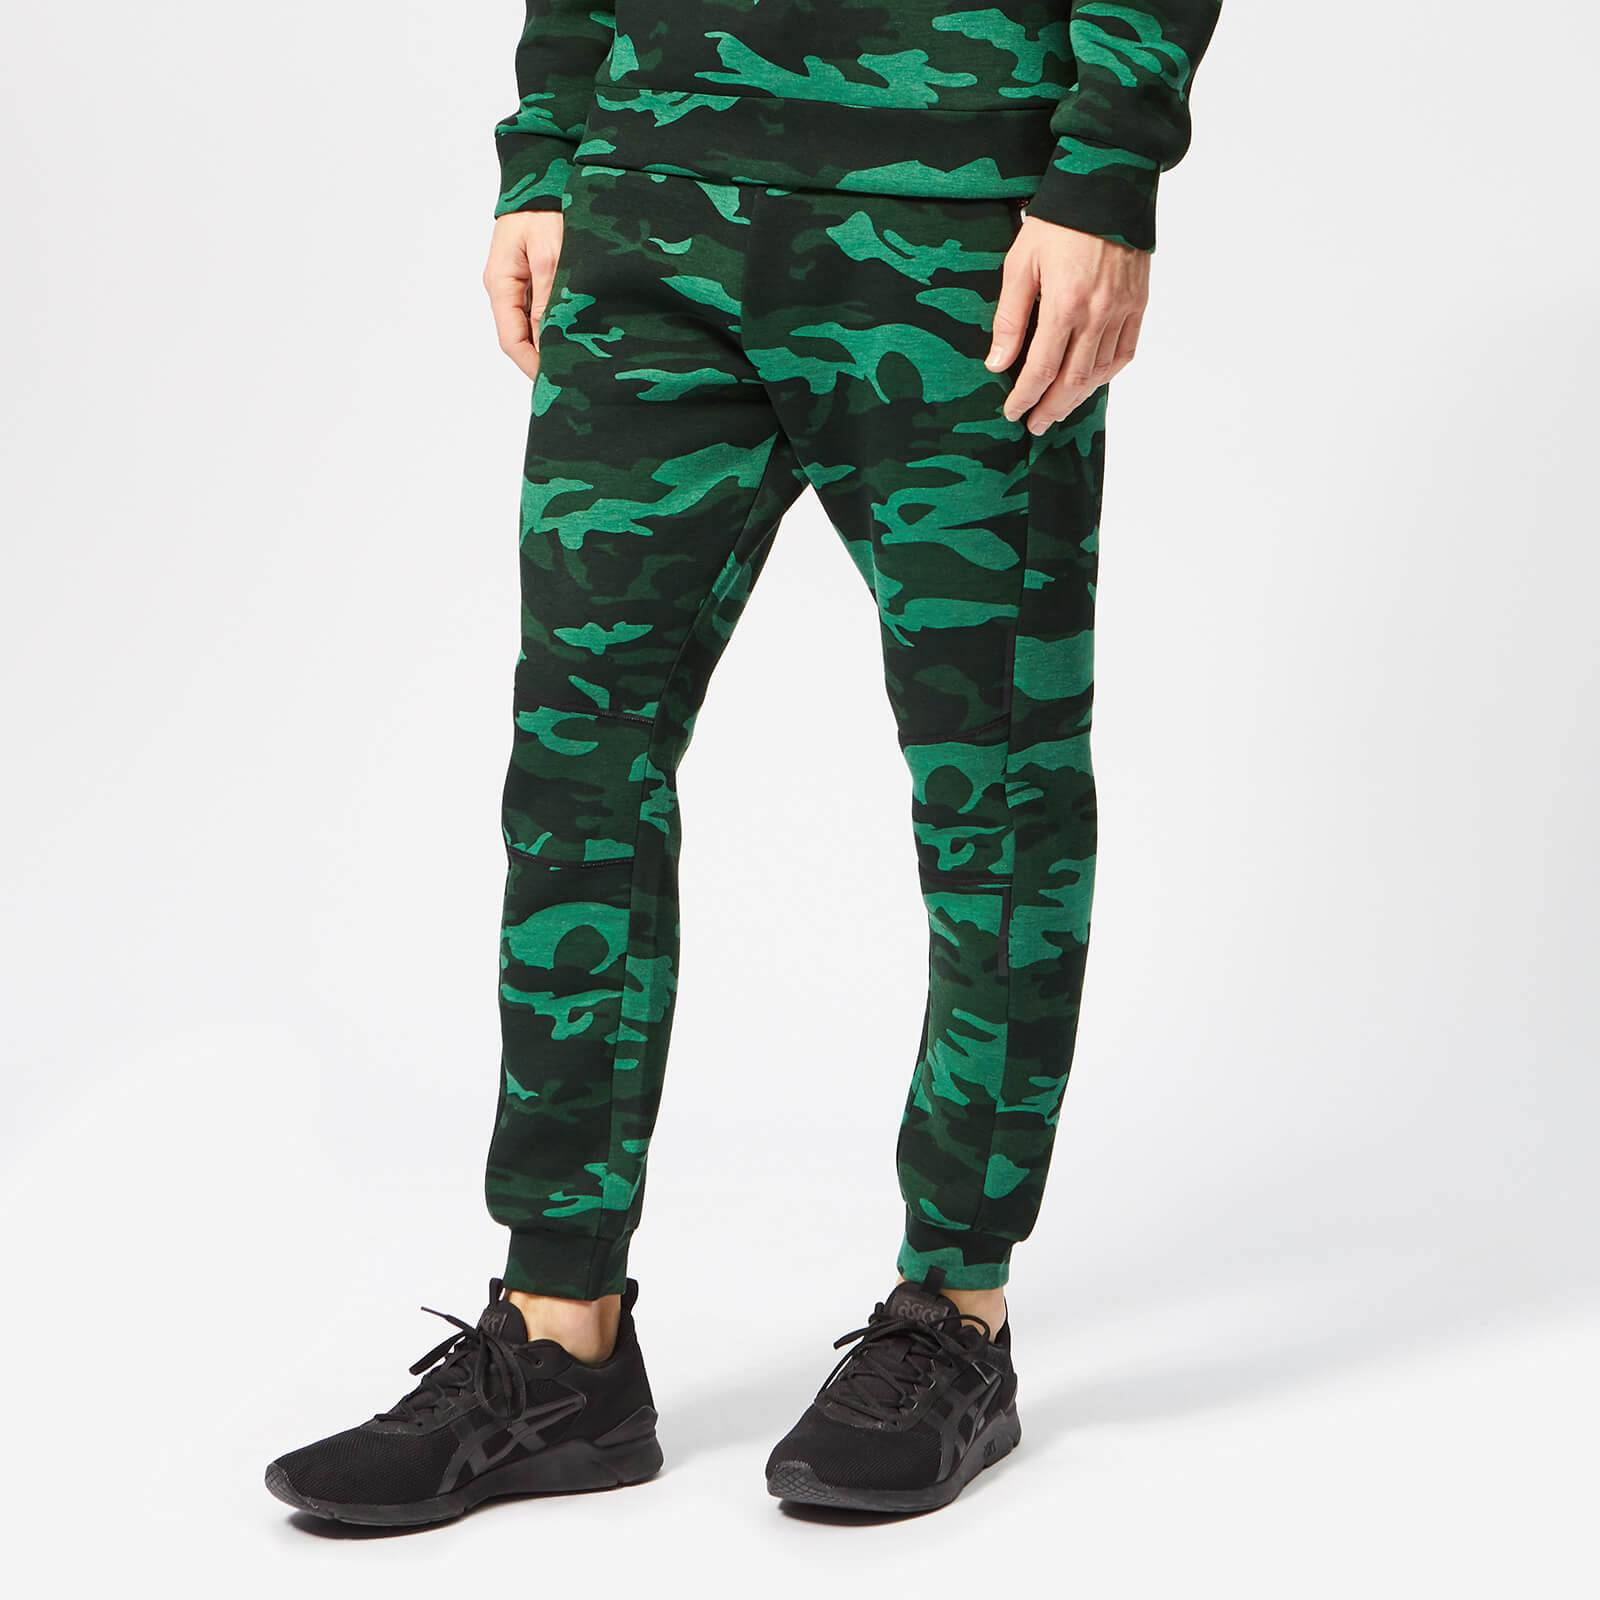 Superdry Sport Men's Gym Tech Stretch Joggers - Forest Camo - L - Green